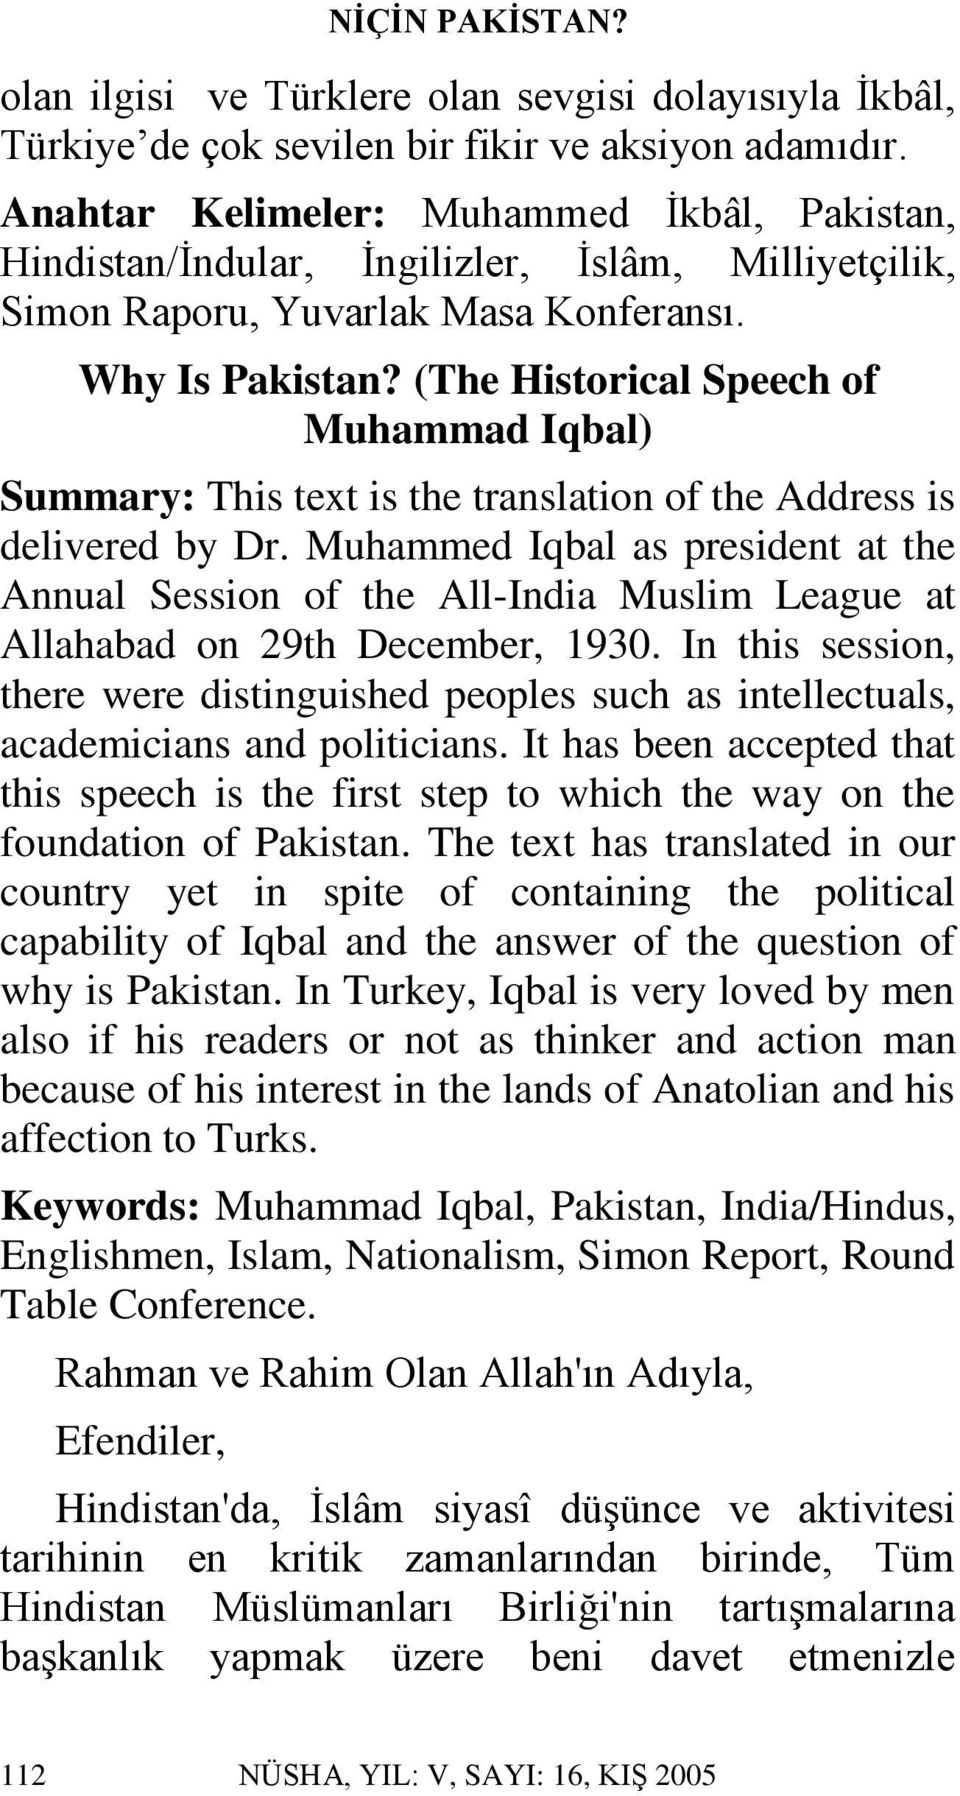 (The Historical Speech of Muhammad Iqbal) Summary: This text is the translation of the Address is delivered by Dr.